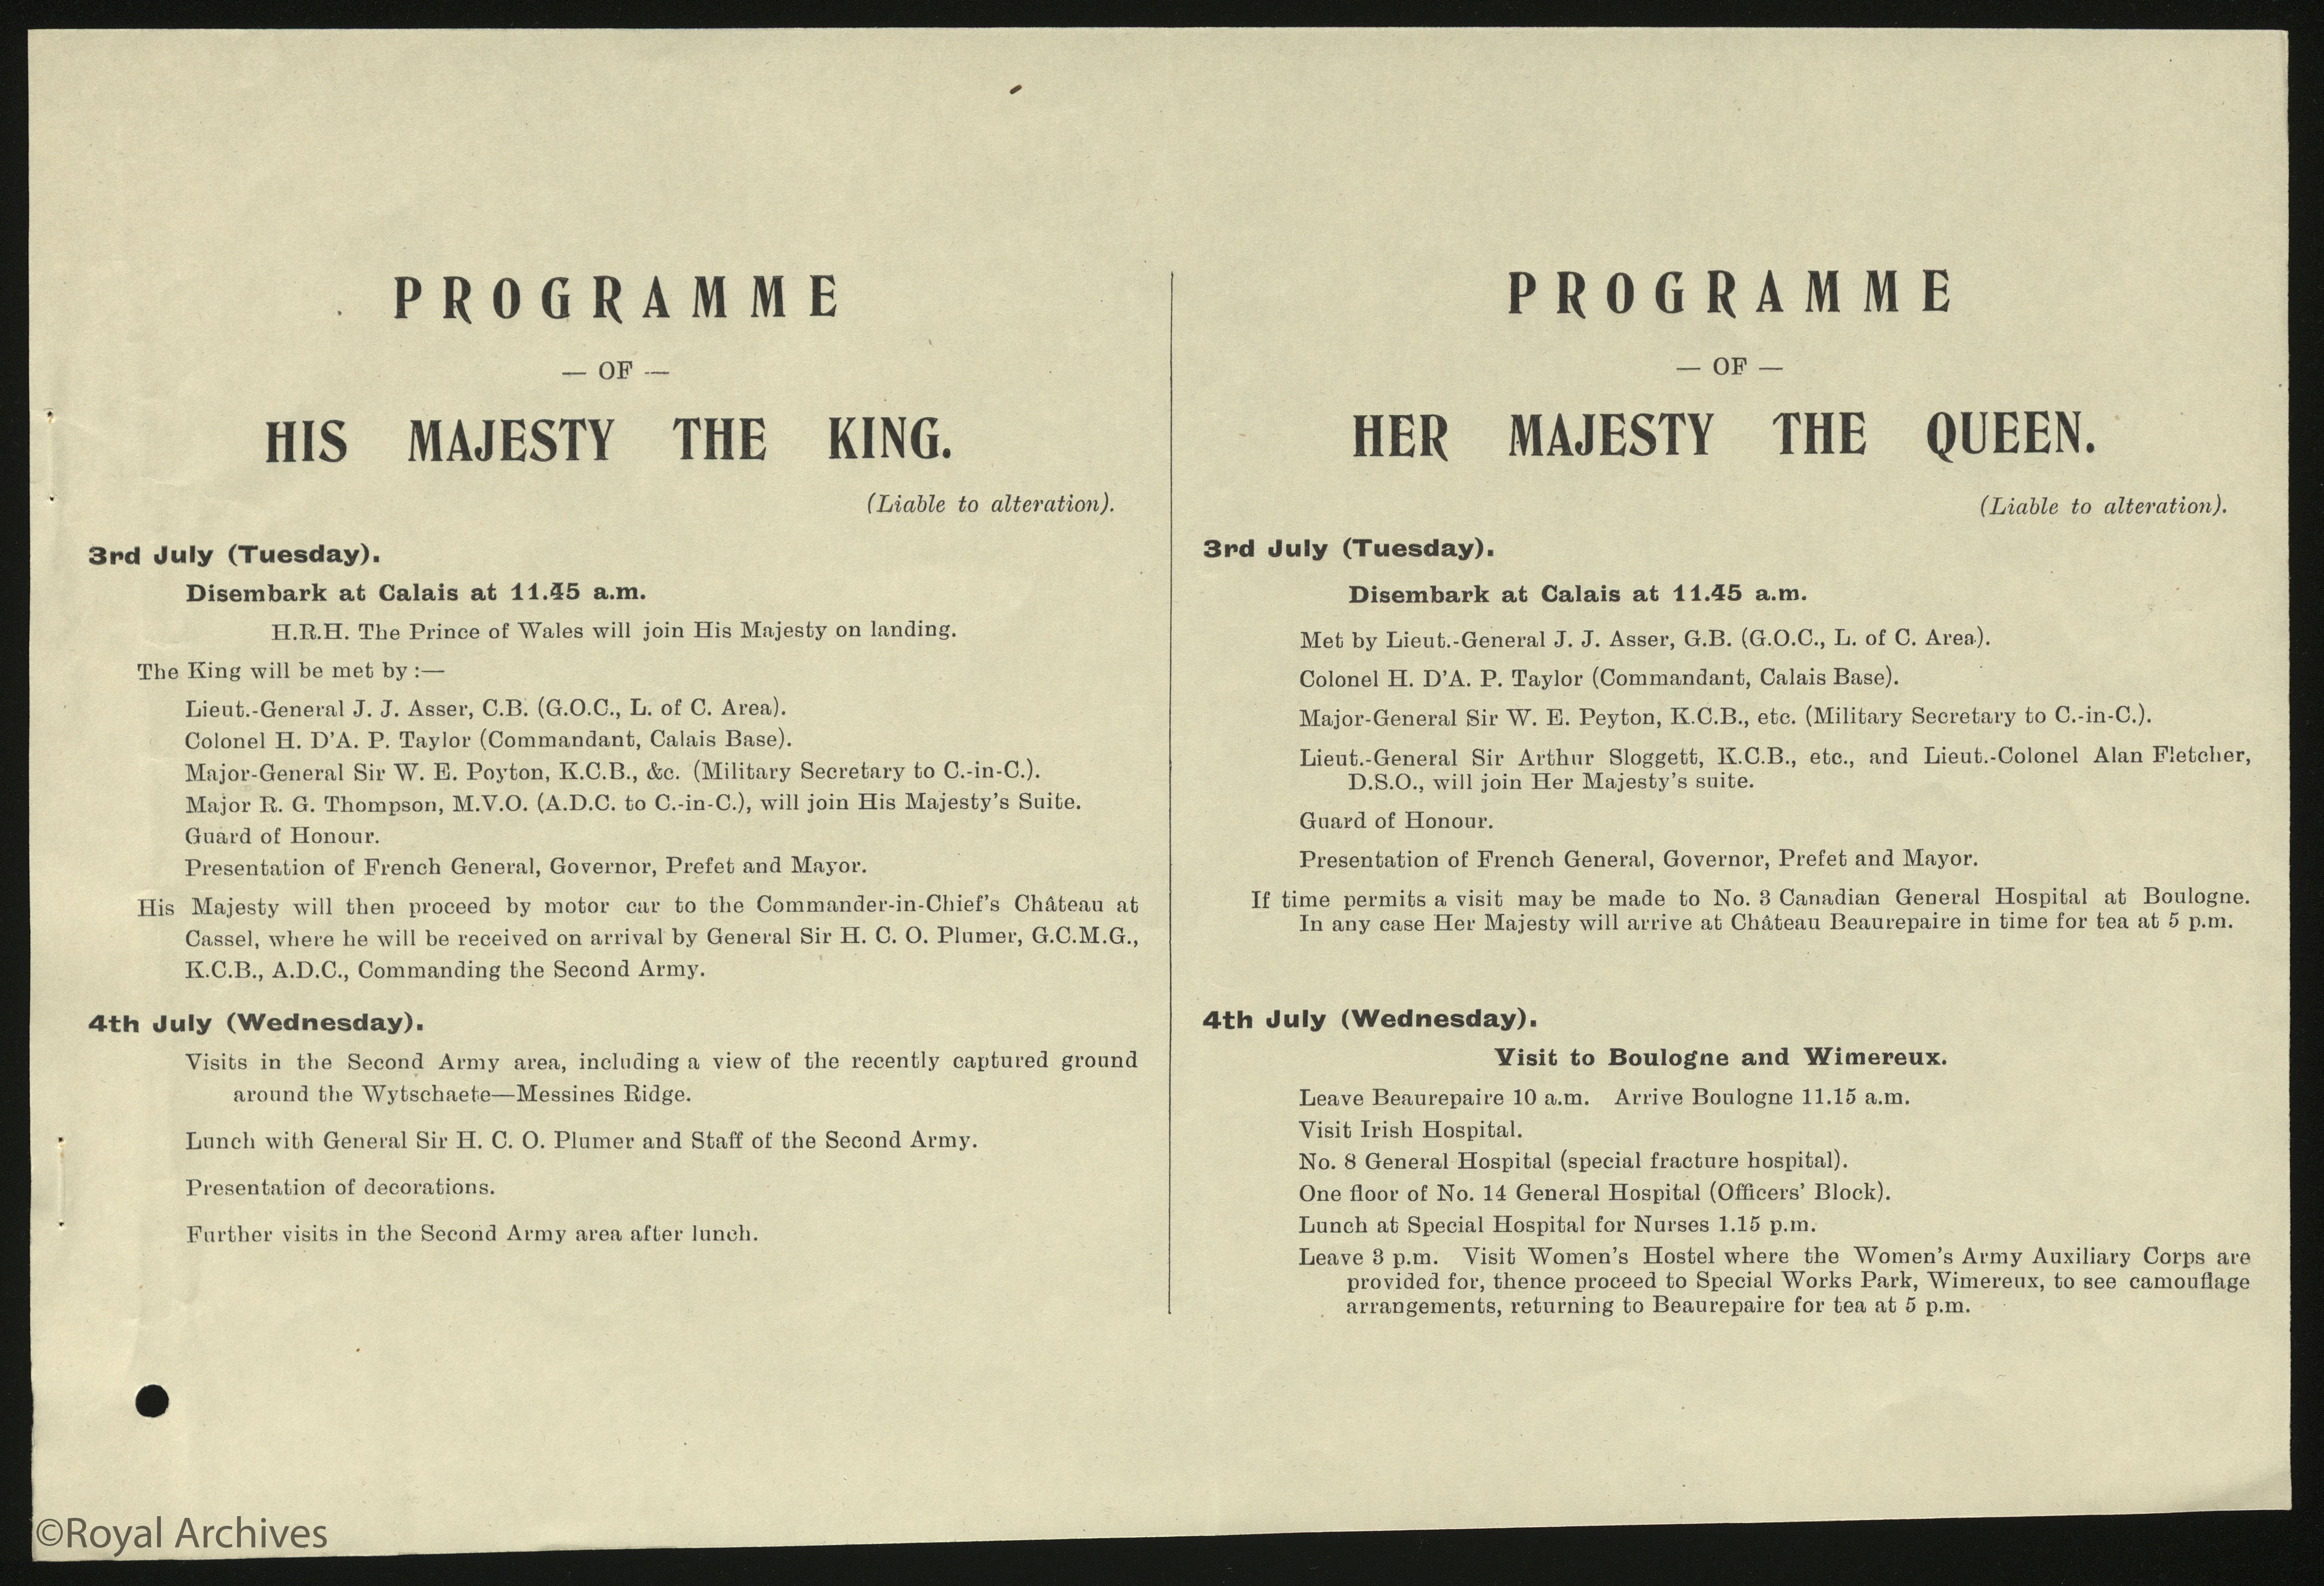 Programme for The King and Queen's Visit